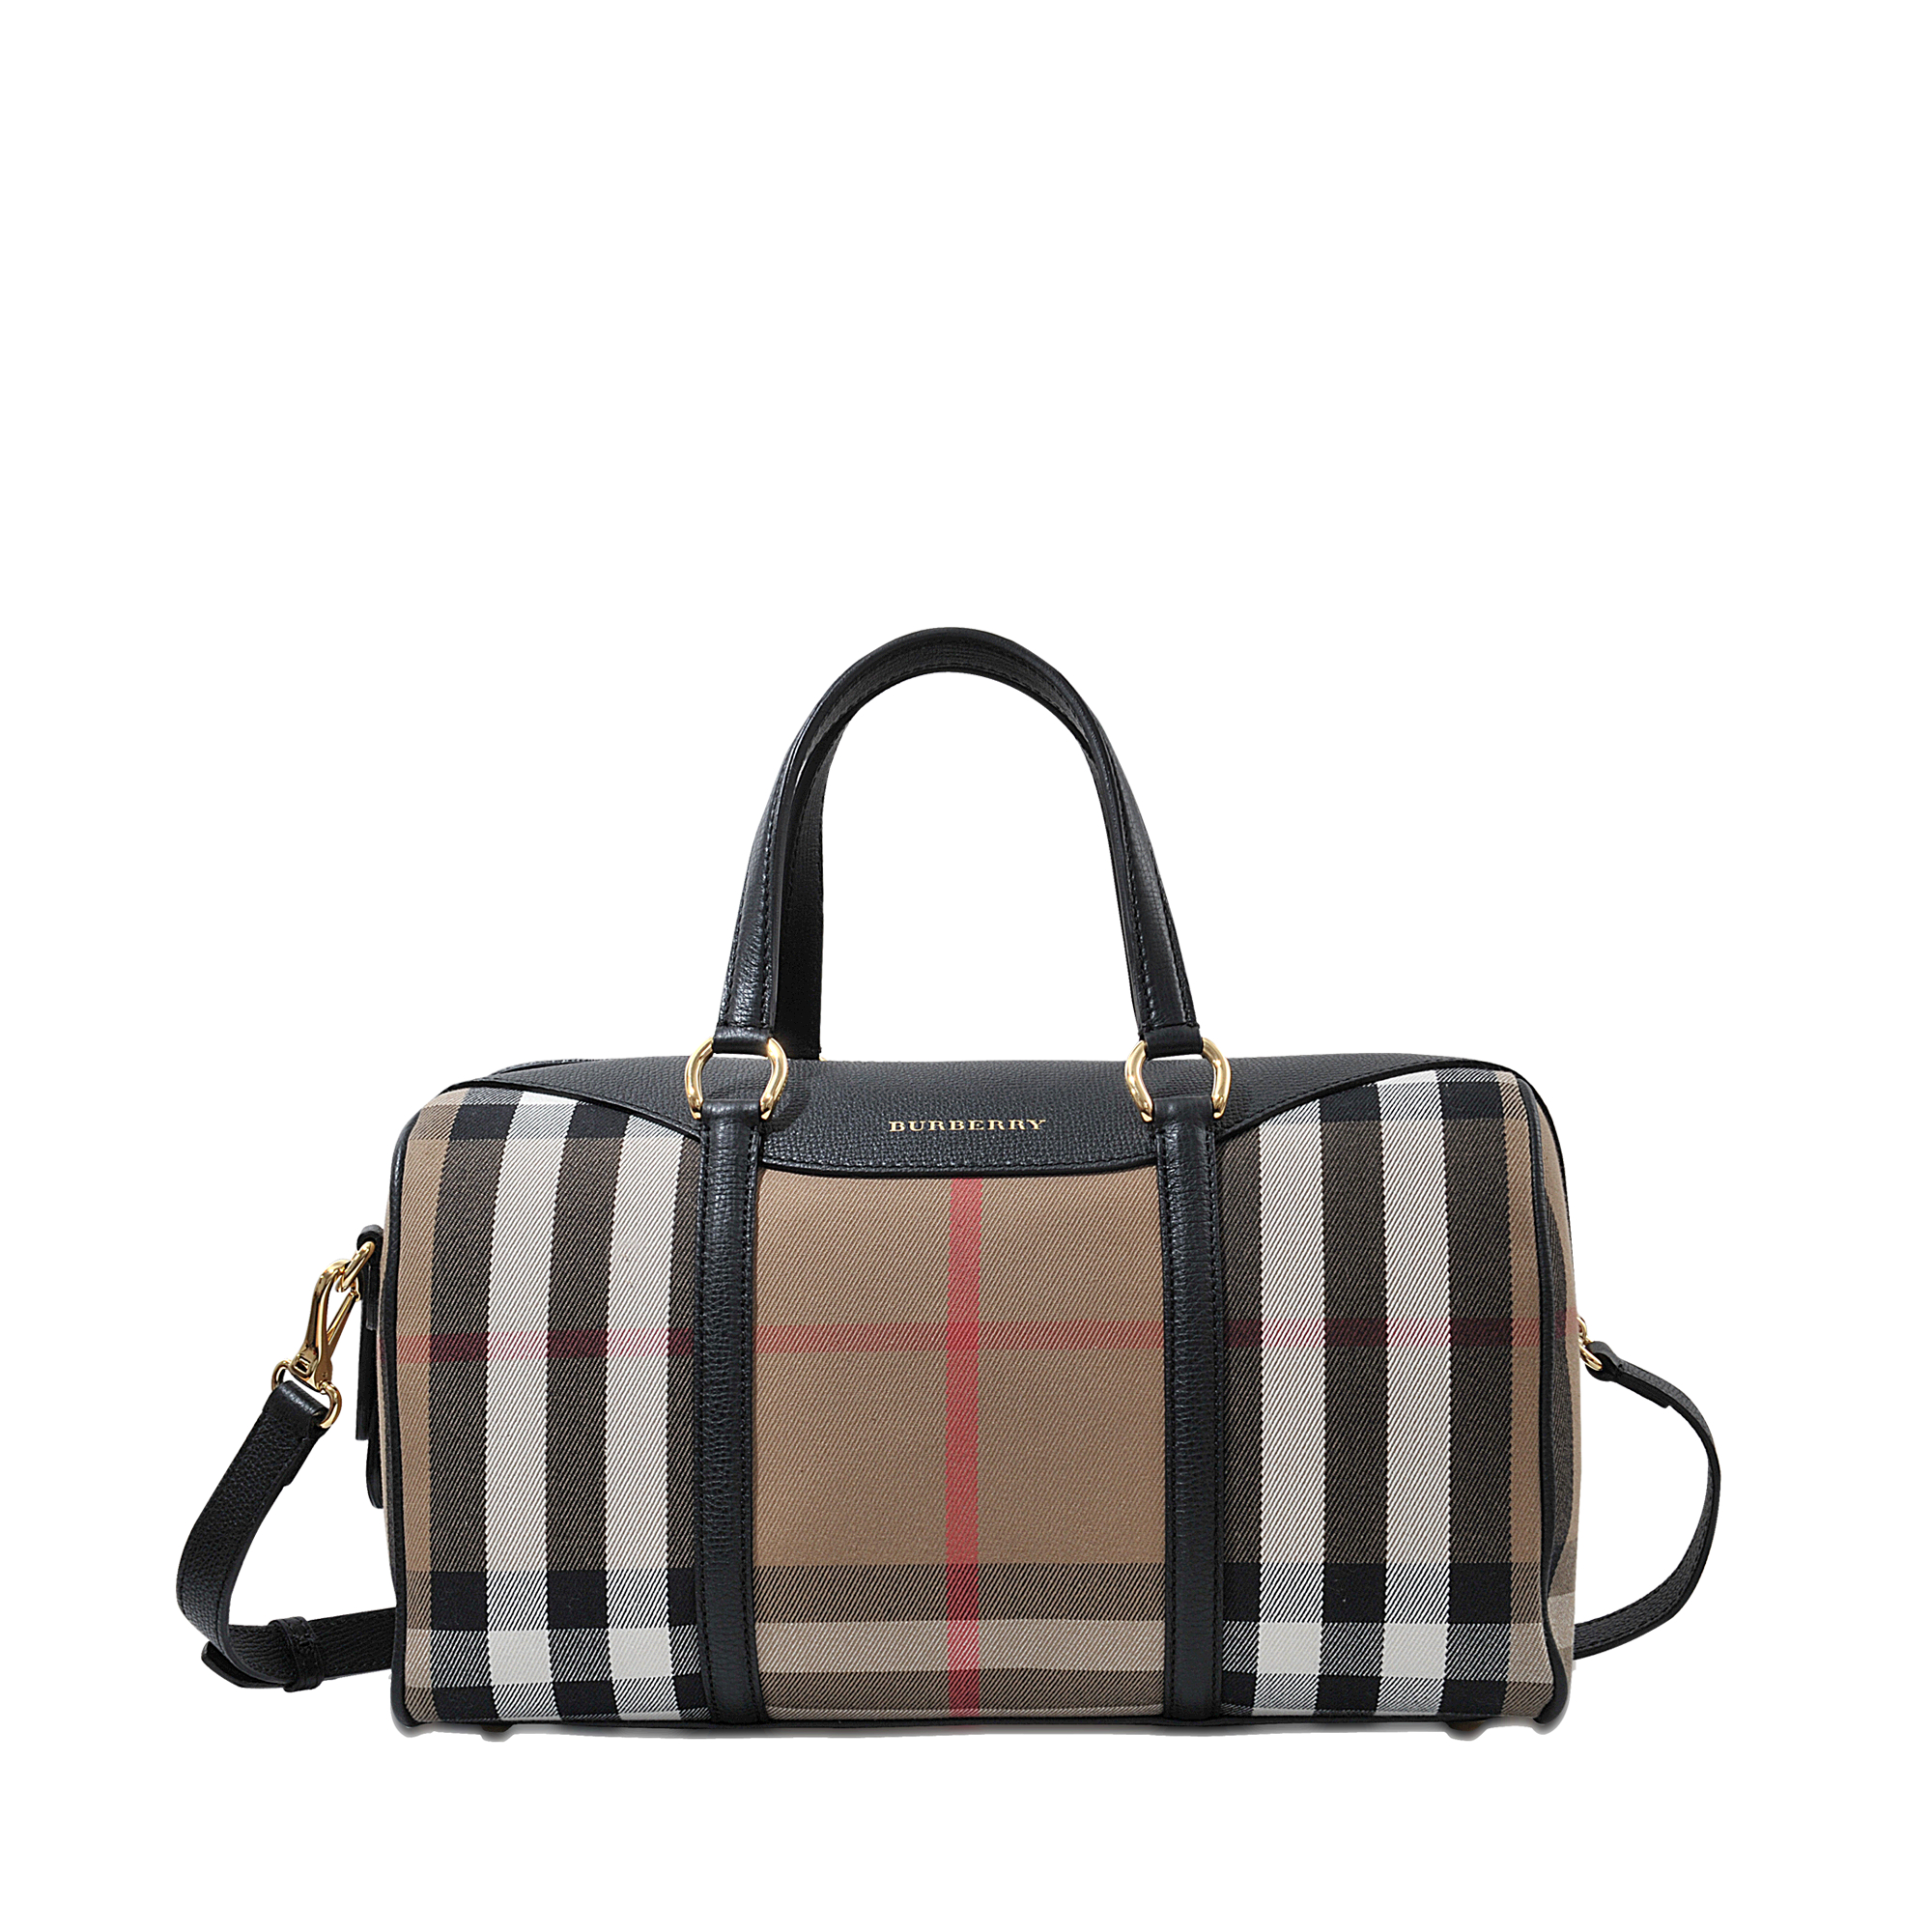 Lyst - Burberry Md Alchester House Check Bag in Black a47eac98cf